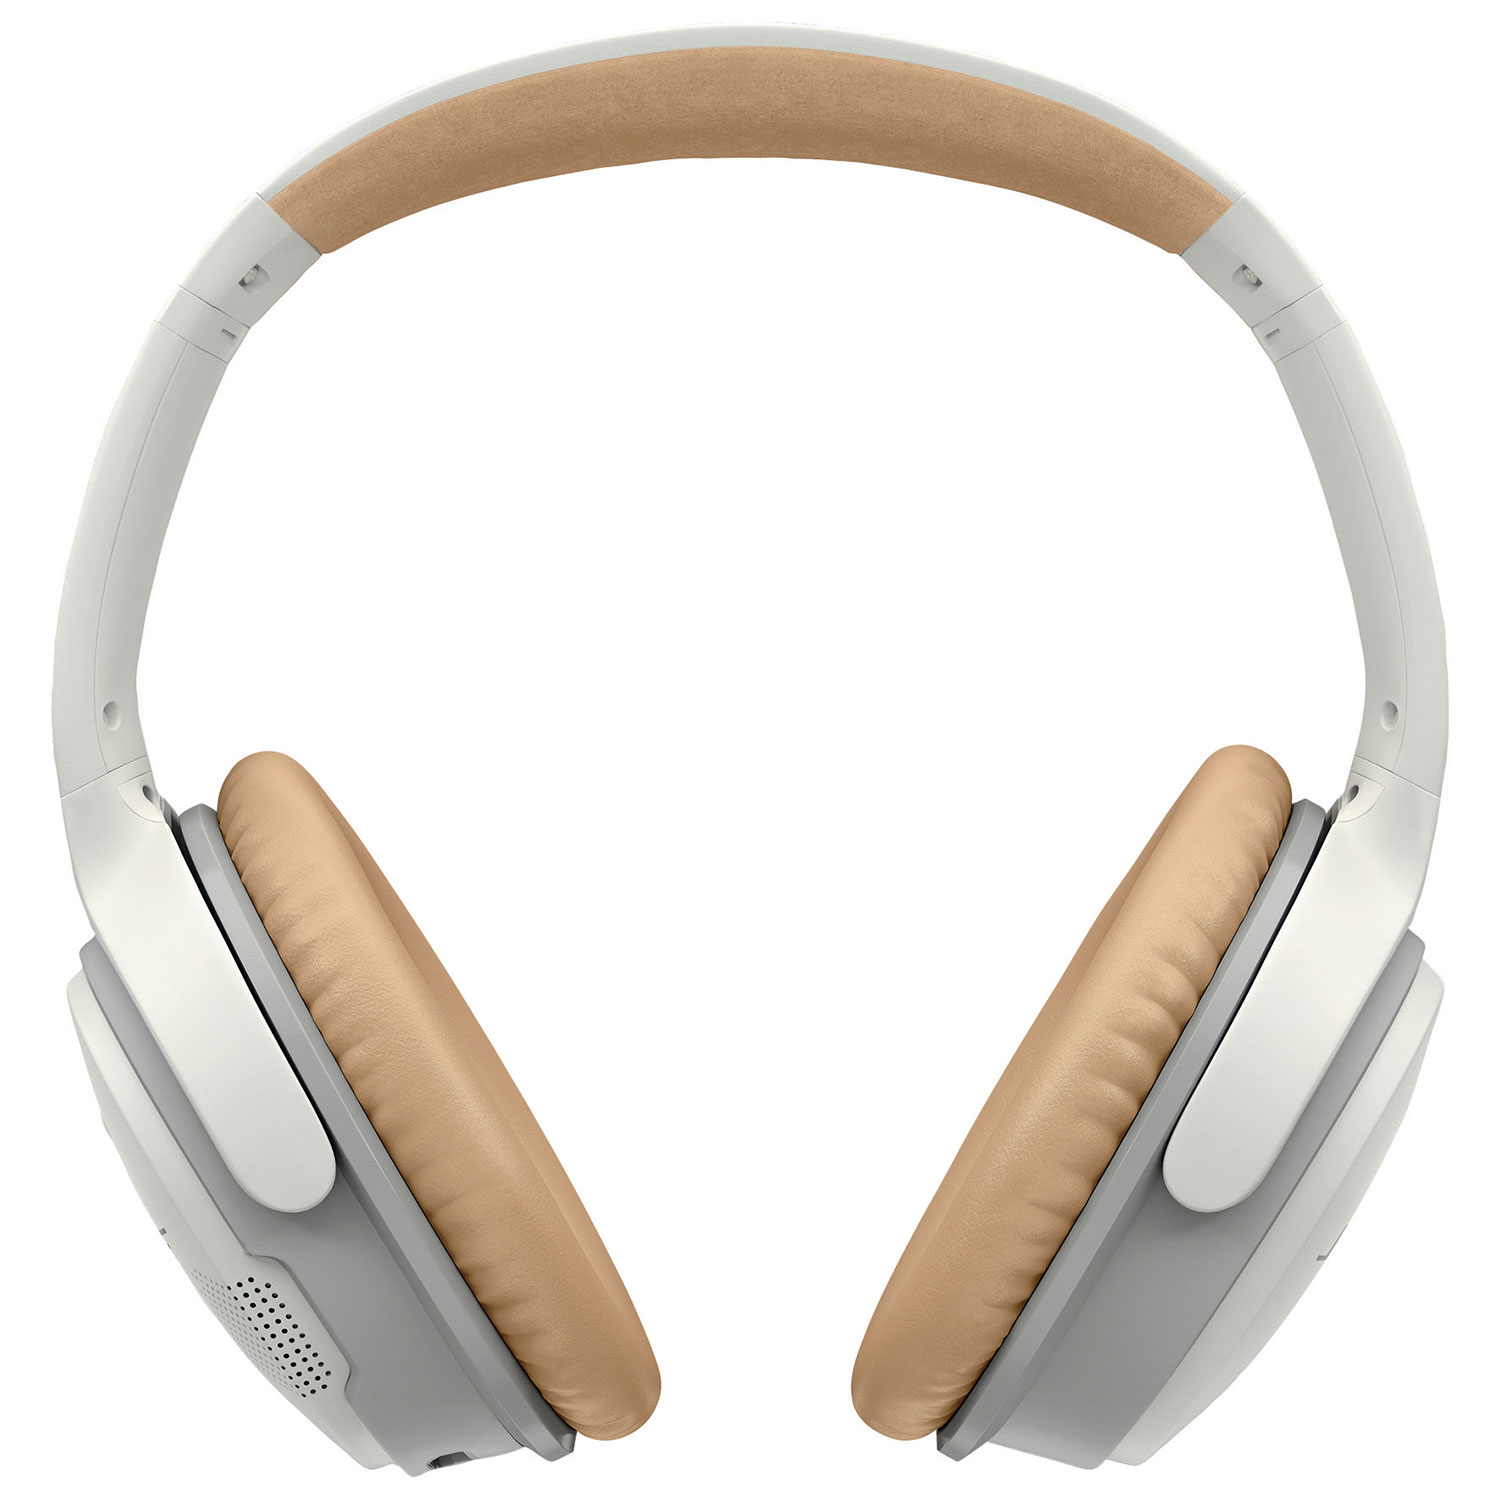 bose bluetooth headphones. bose soundlink ii over-ear wireless headphones with mic - white : best buy canada bluetooth